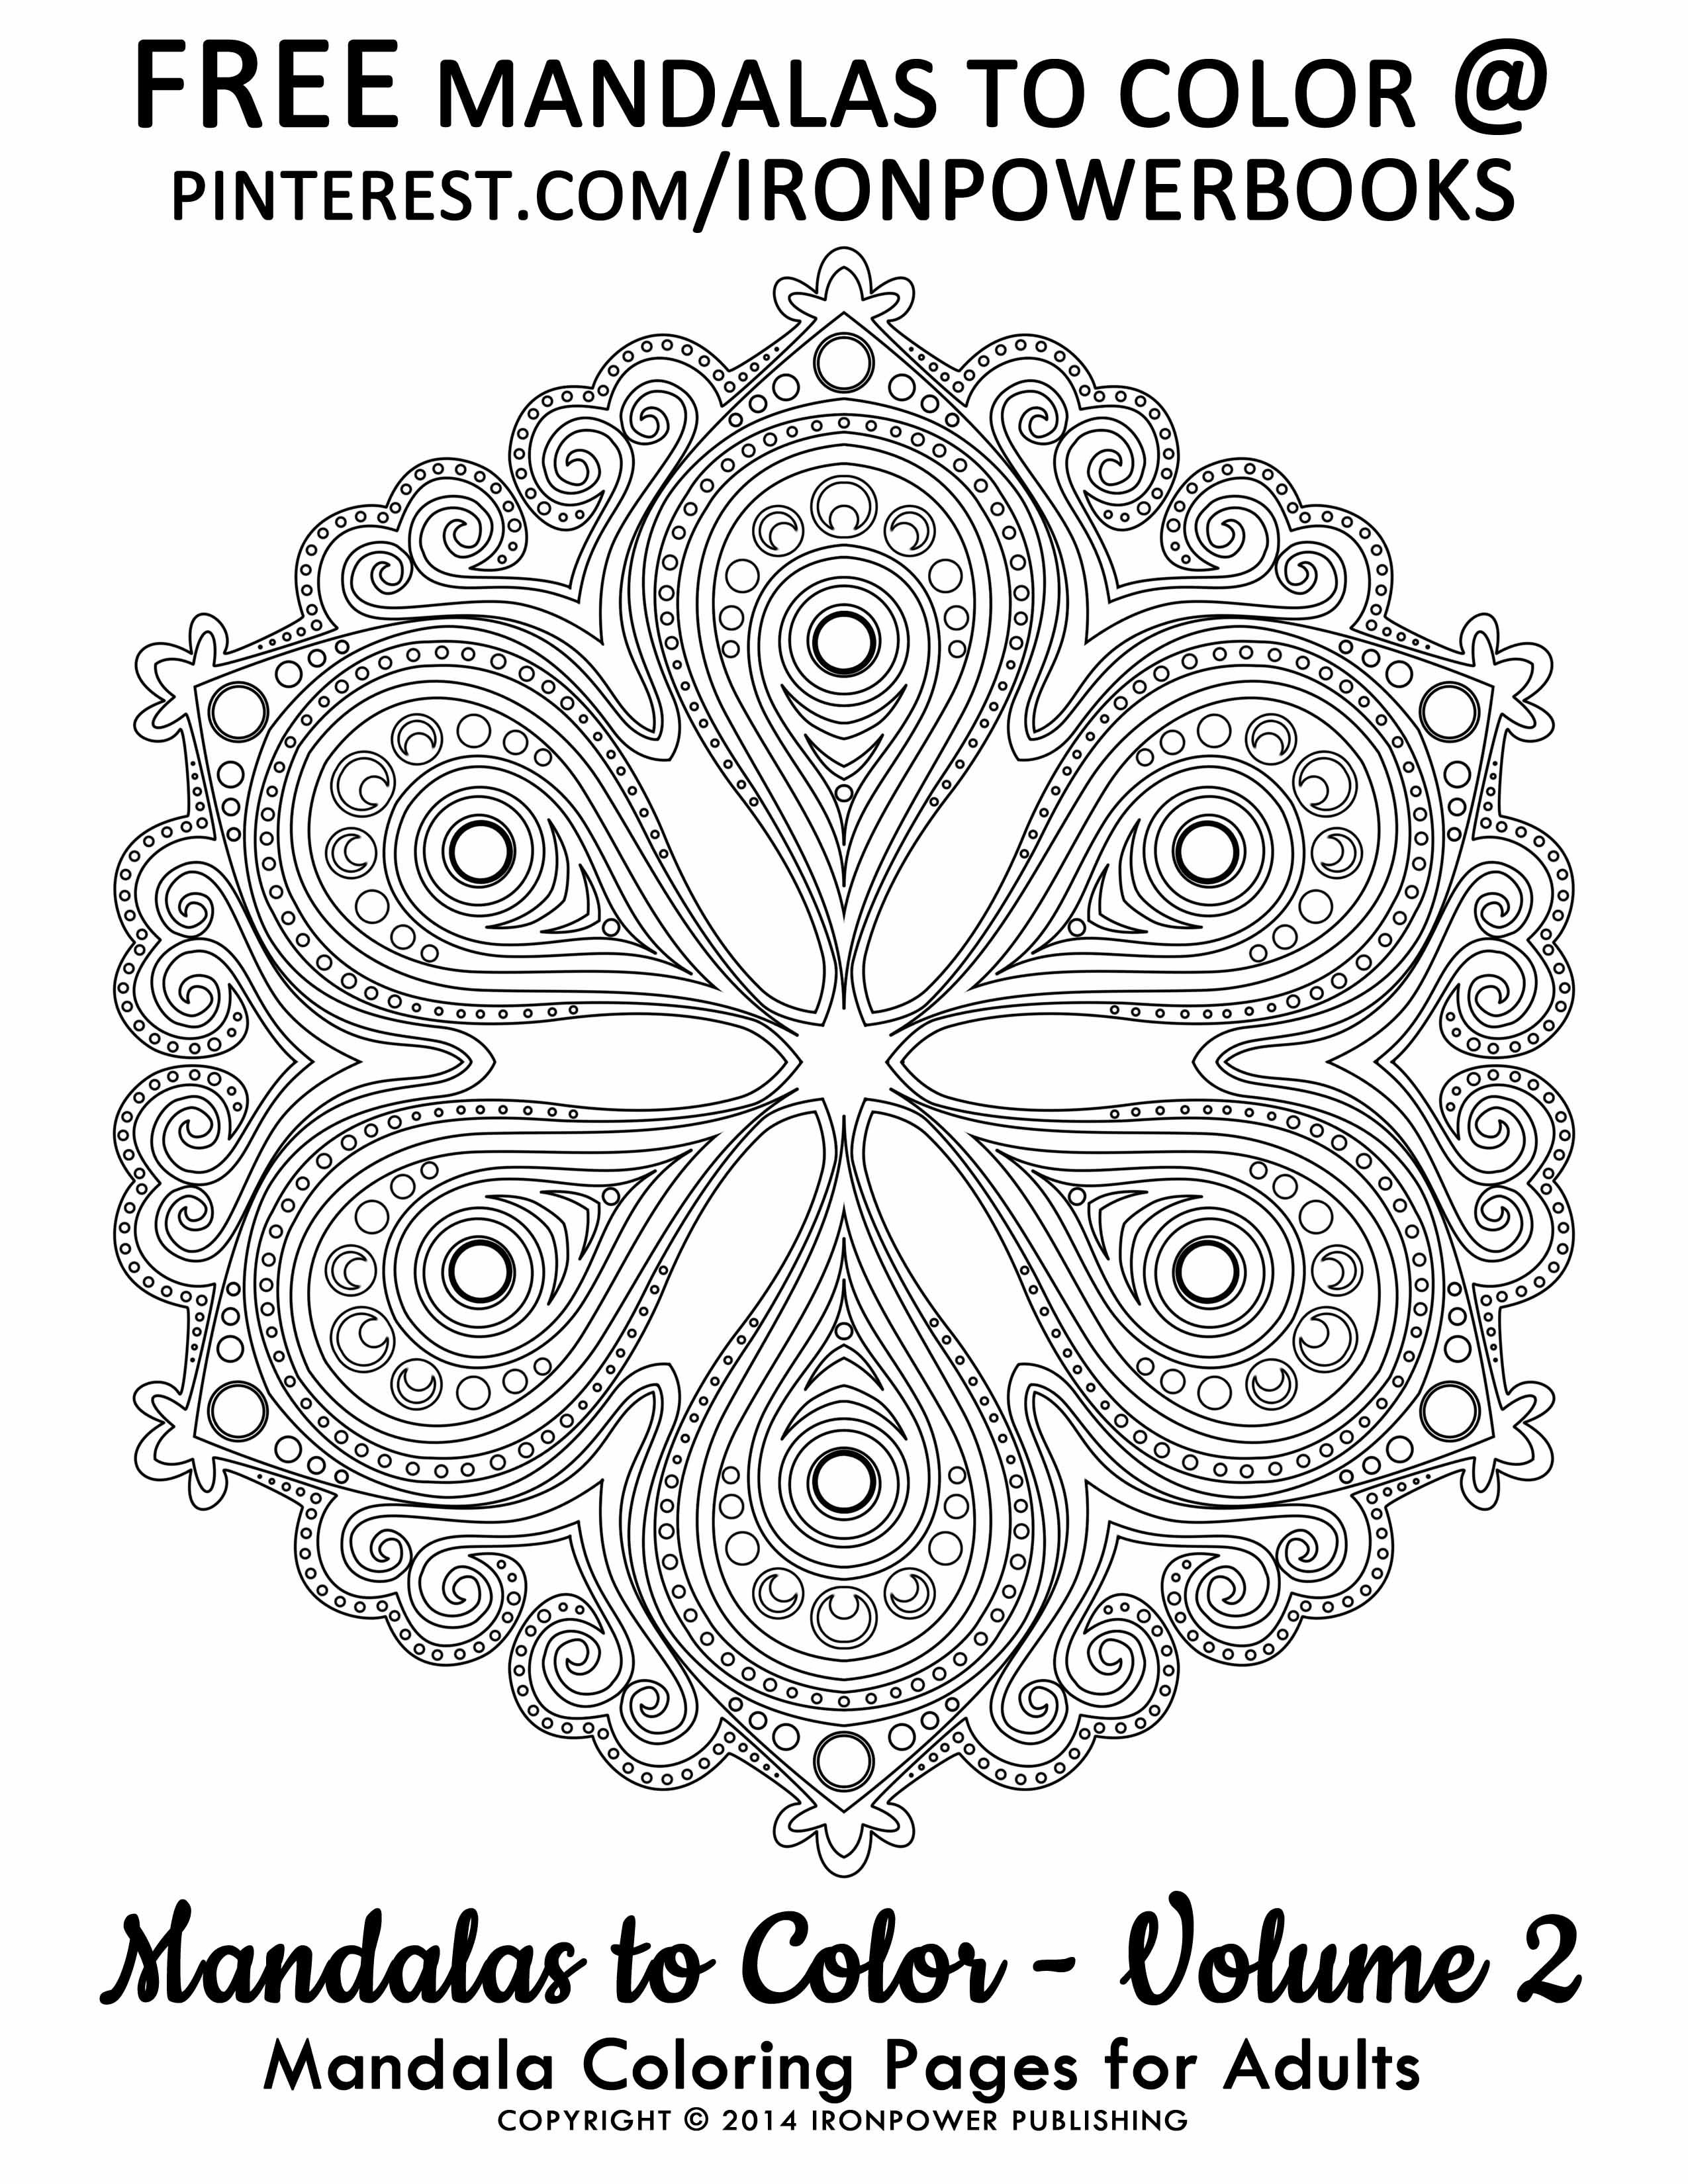 Hello There Cathymalchiodi This Is A Free Mandala Coloring